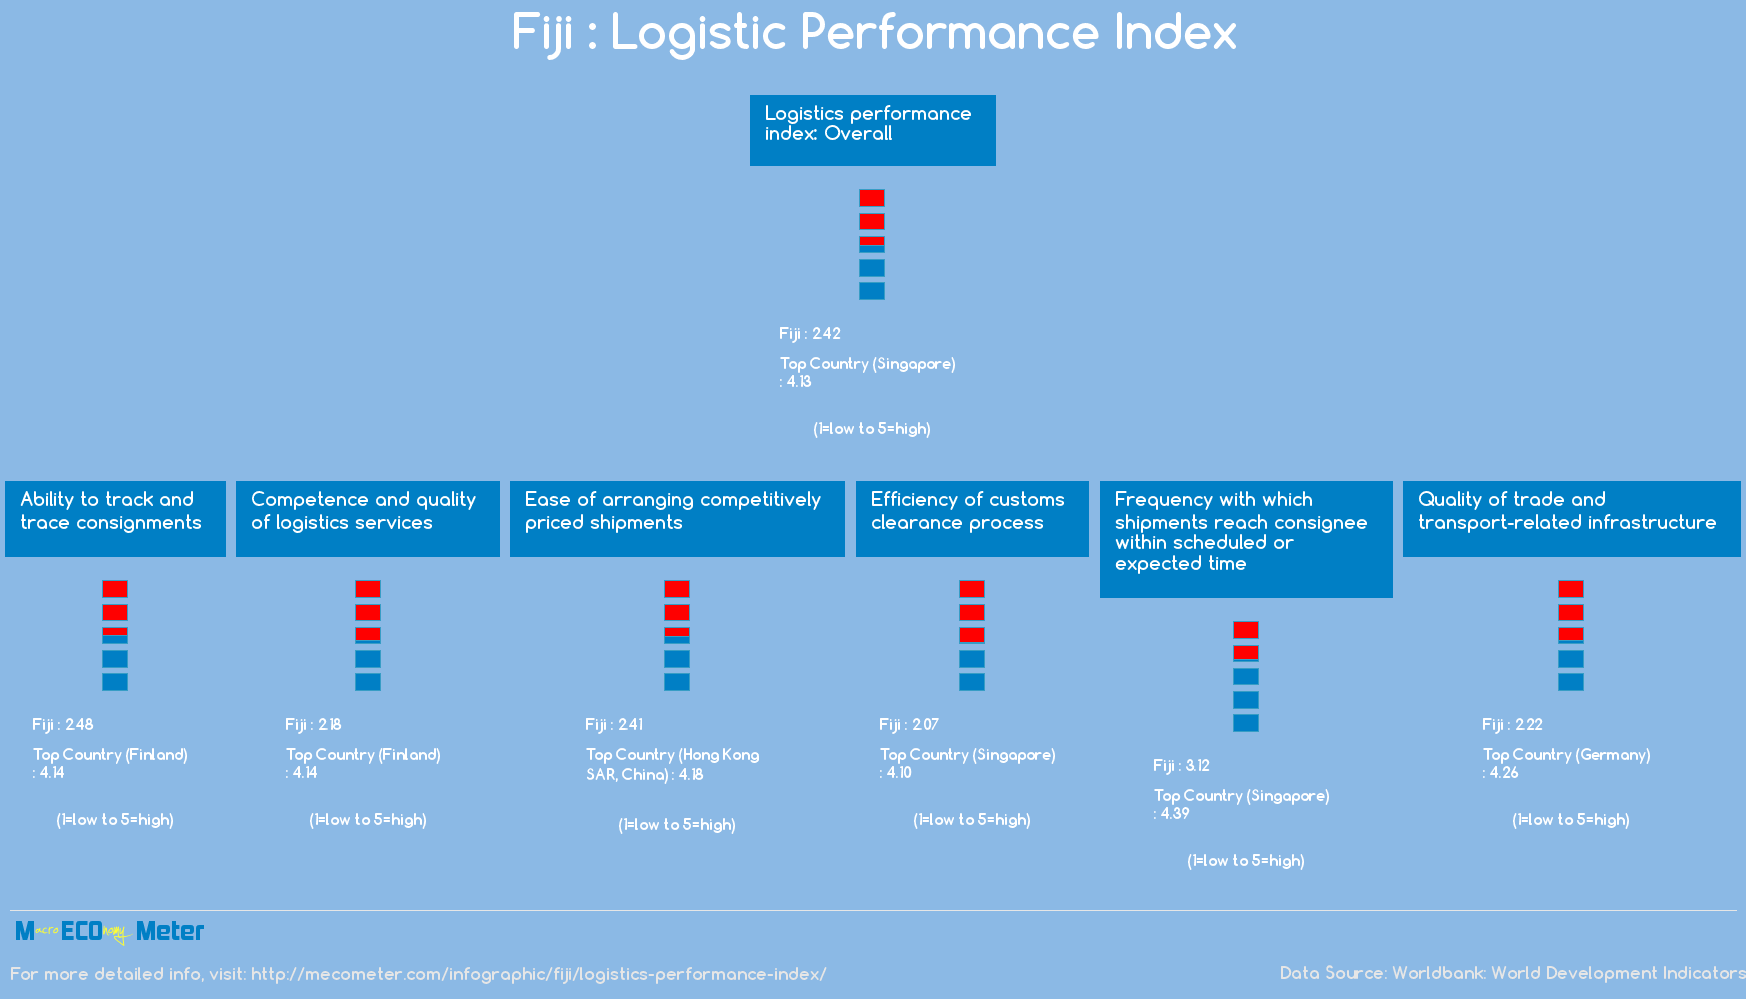 Fiji : Logistic Performance Index